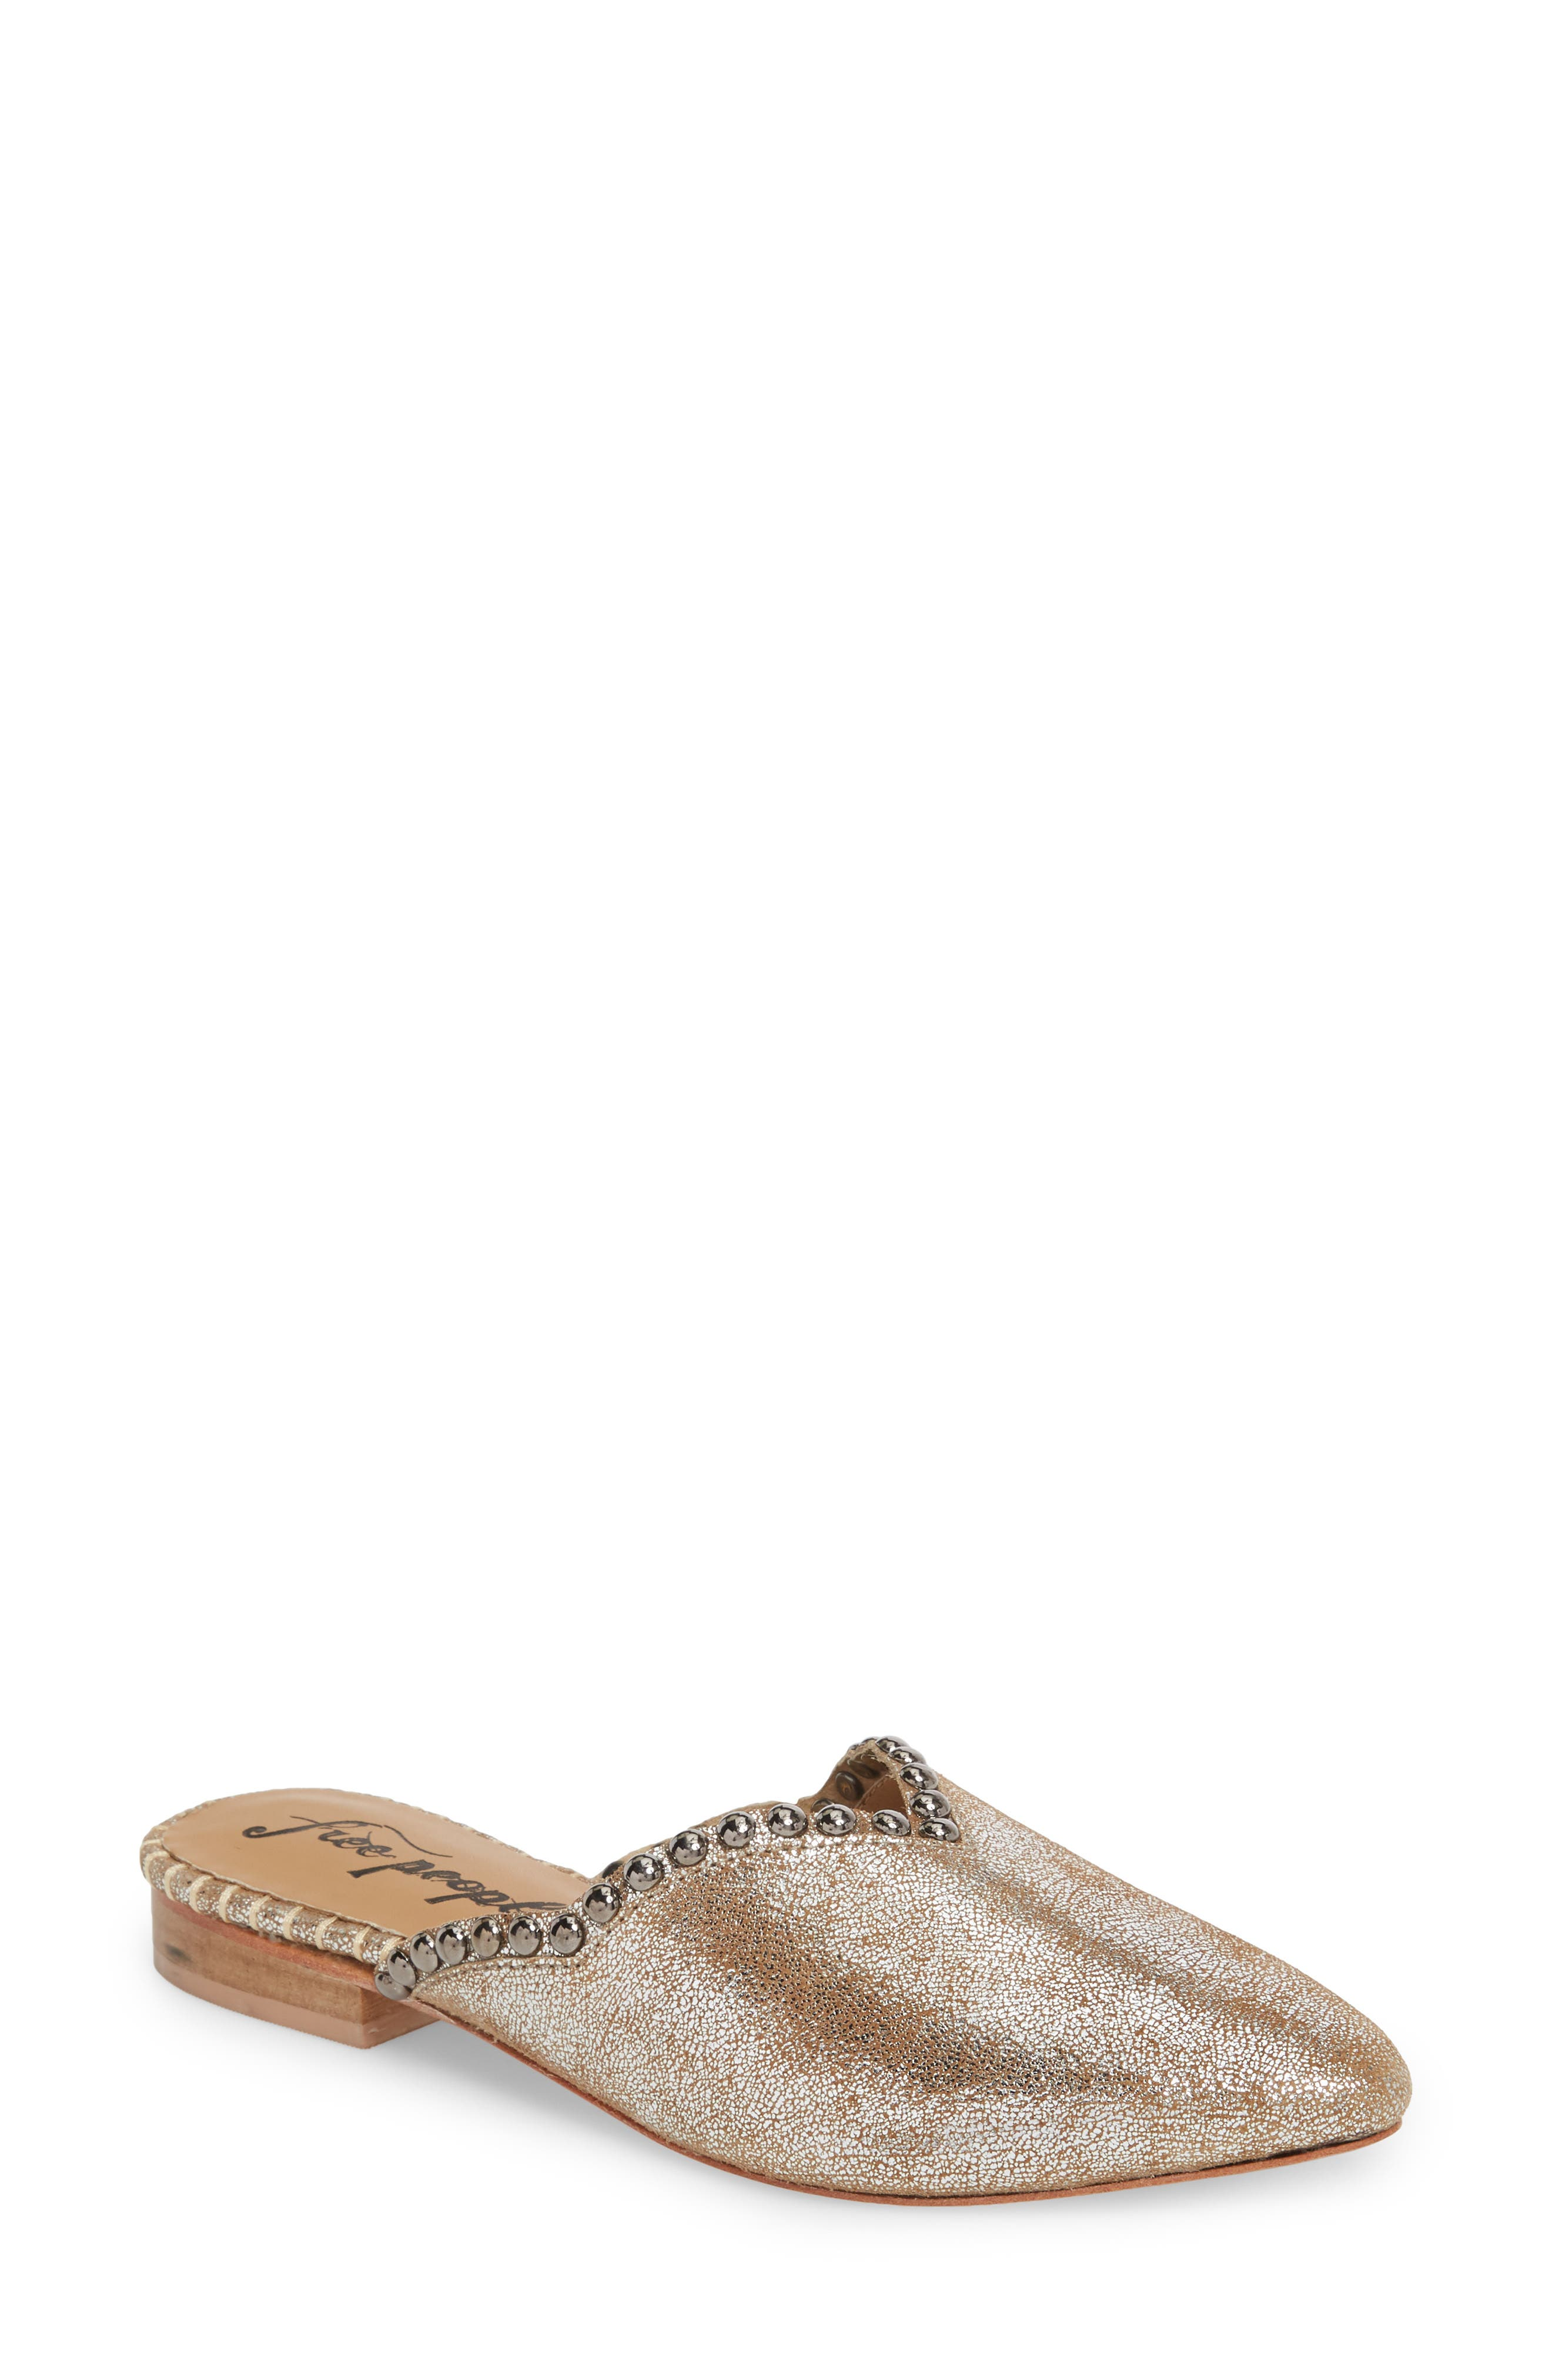 Newport Studded Mule,                         Main,                         color, SILVER